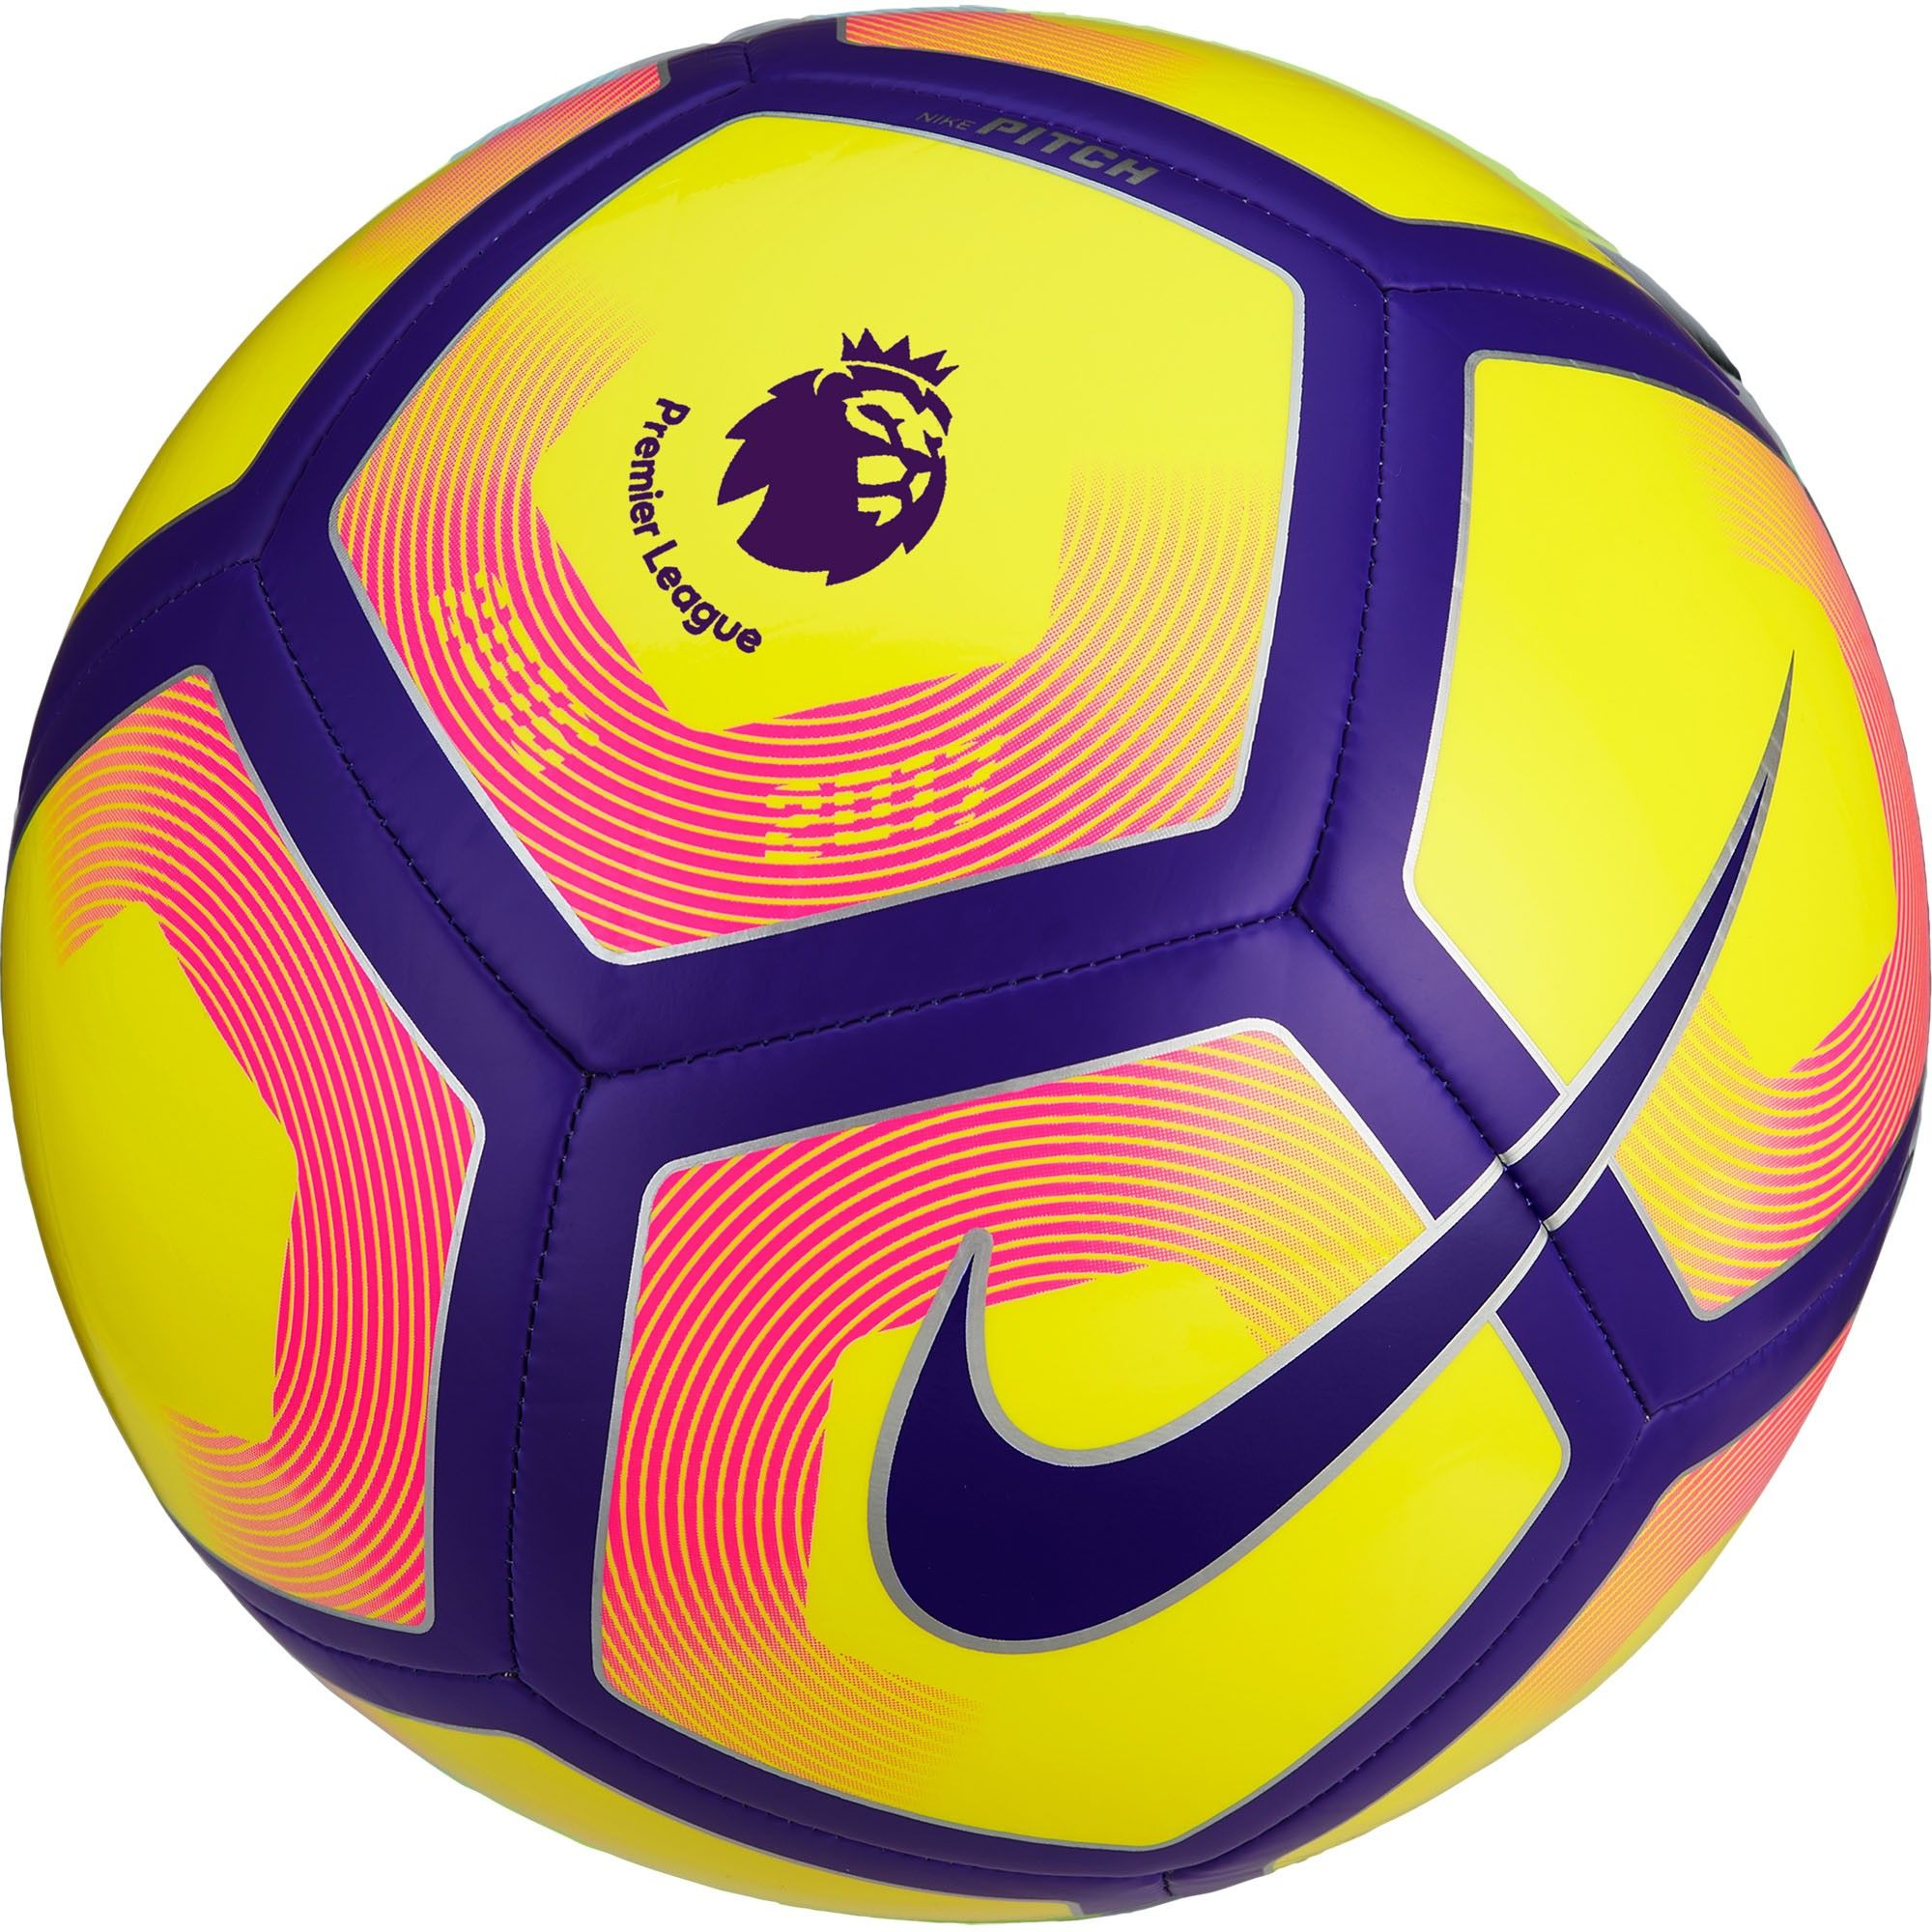 8dc0becce6 Nike Pitch 2016 17 Hi-Vis Premier League Football